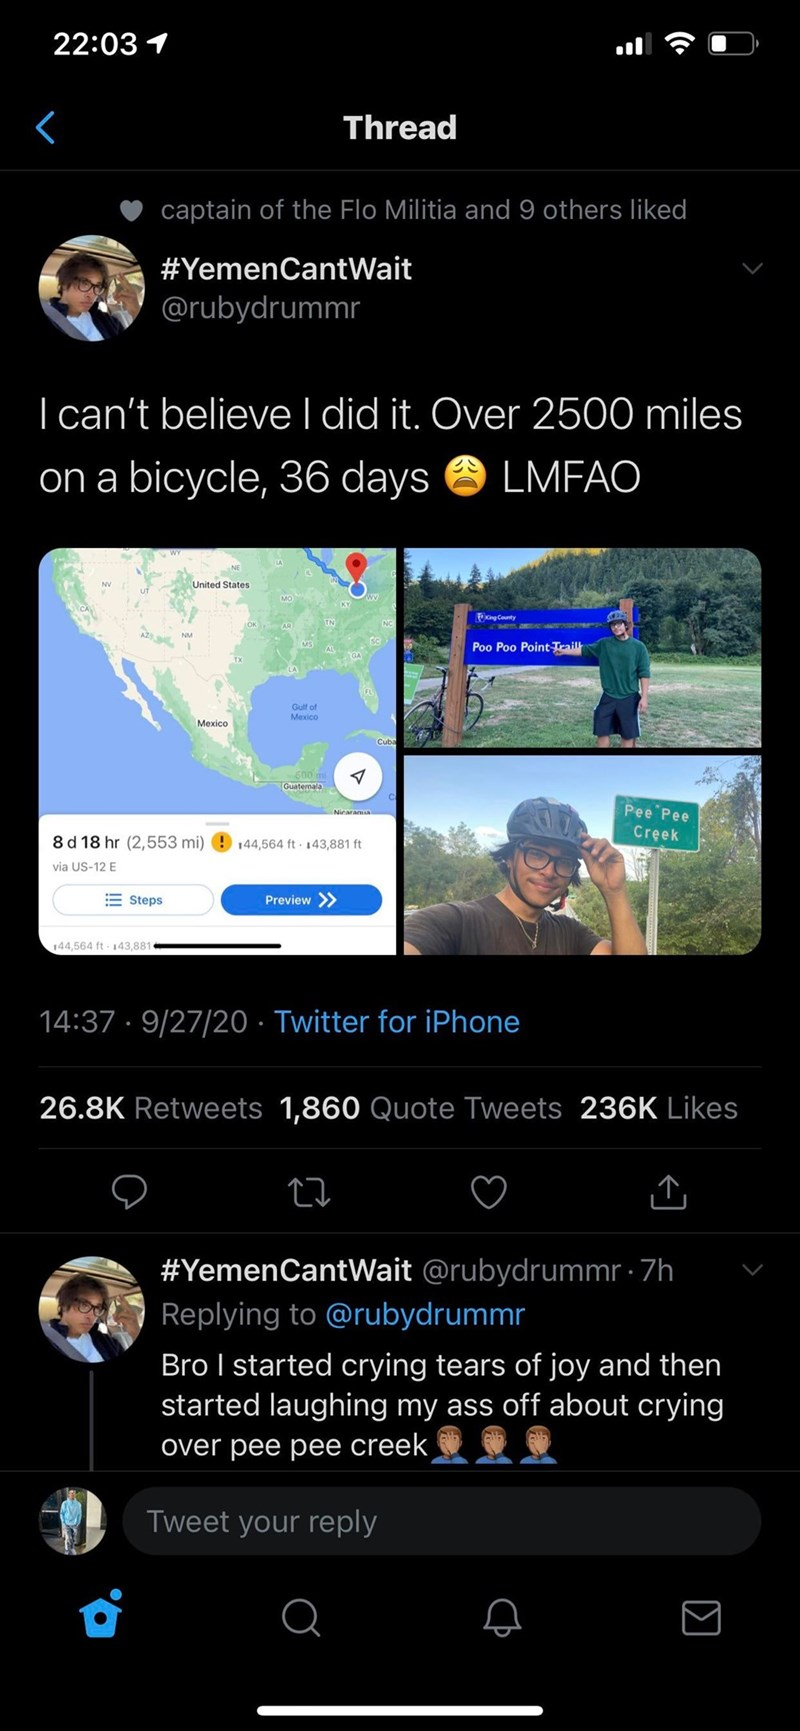 Text - 22:03 1 Thread captain of the Flo Militia and 9 others liked #YemenCantWait @rubydrummr I can't believe I did it. Over 2500 miles on a bicycle, 36 days LMFAO United States MO wy OKng County OK AR TN NM AL Poo Poo Point Trail Gulf of Mexico Mexico Cuba 600 mi Guatemala Pee Pee Creek 8 d 18 hr (2,553 mi) 144,564 ft 143,881 ft via US-12 E E Steps Preview >> 144,564 ft 143,881 14:37 · 9/27/20 · Twitter for iPhone 26.8K Retweets 1,860 Quote Tweets 236K Likes #YemenCantWait @rubydrummr · 7h Rep